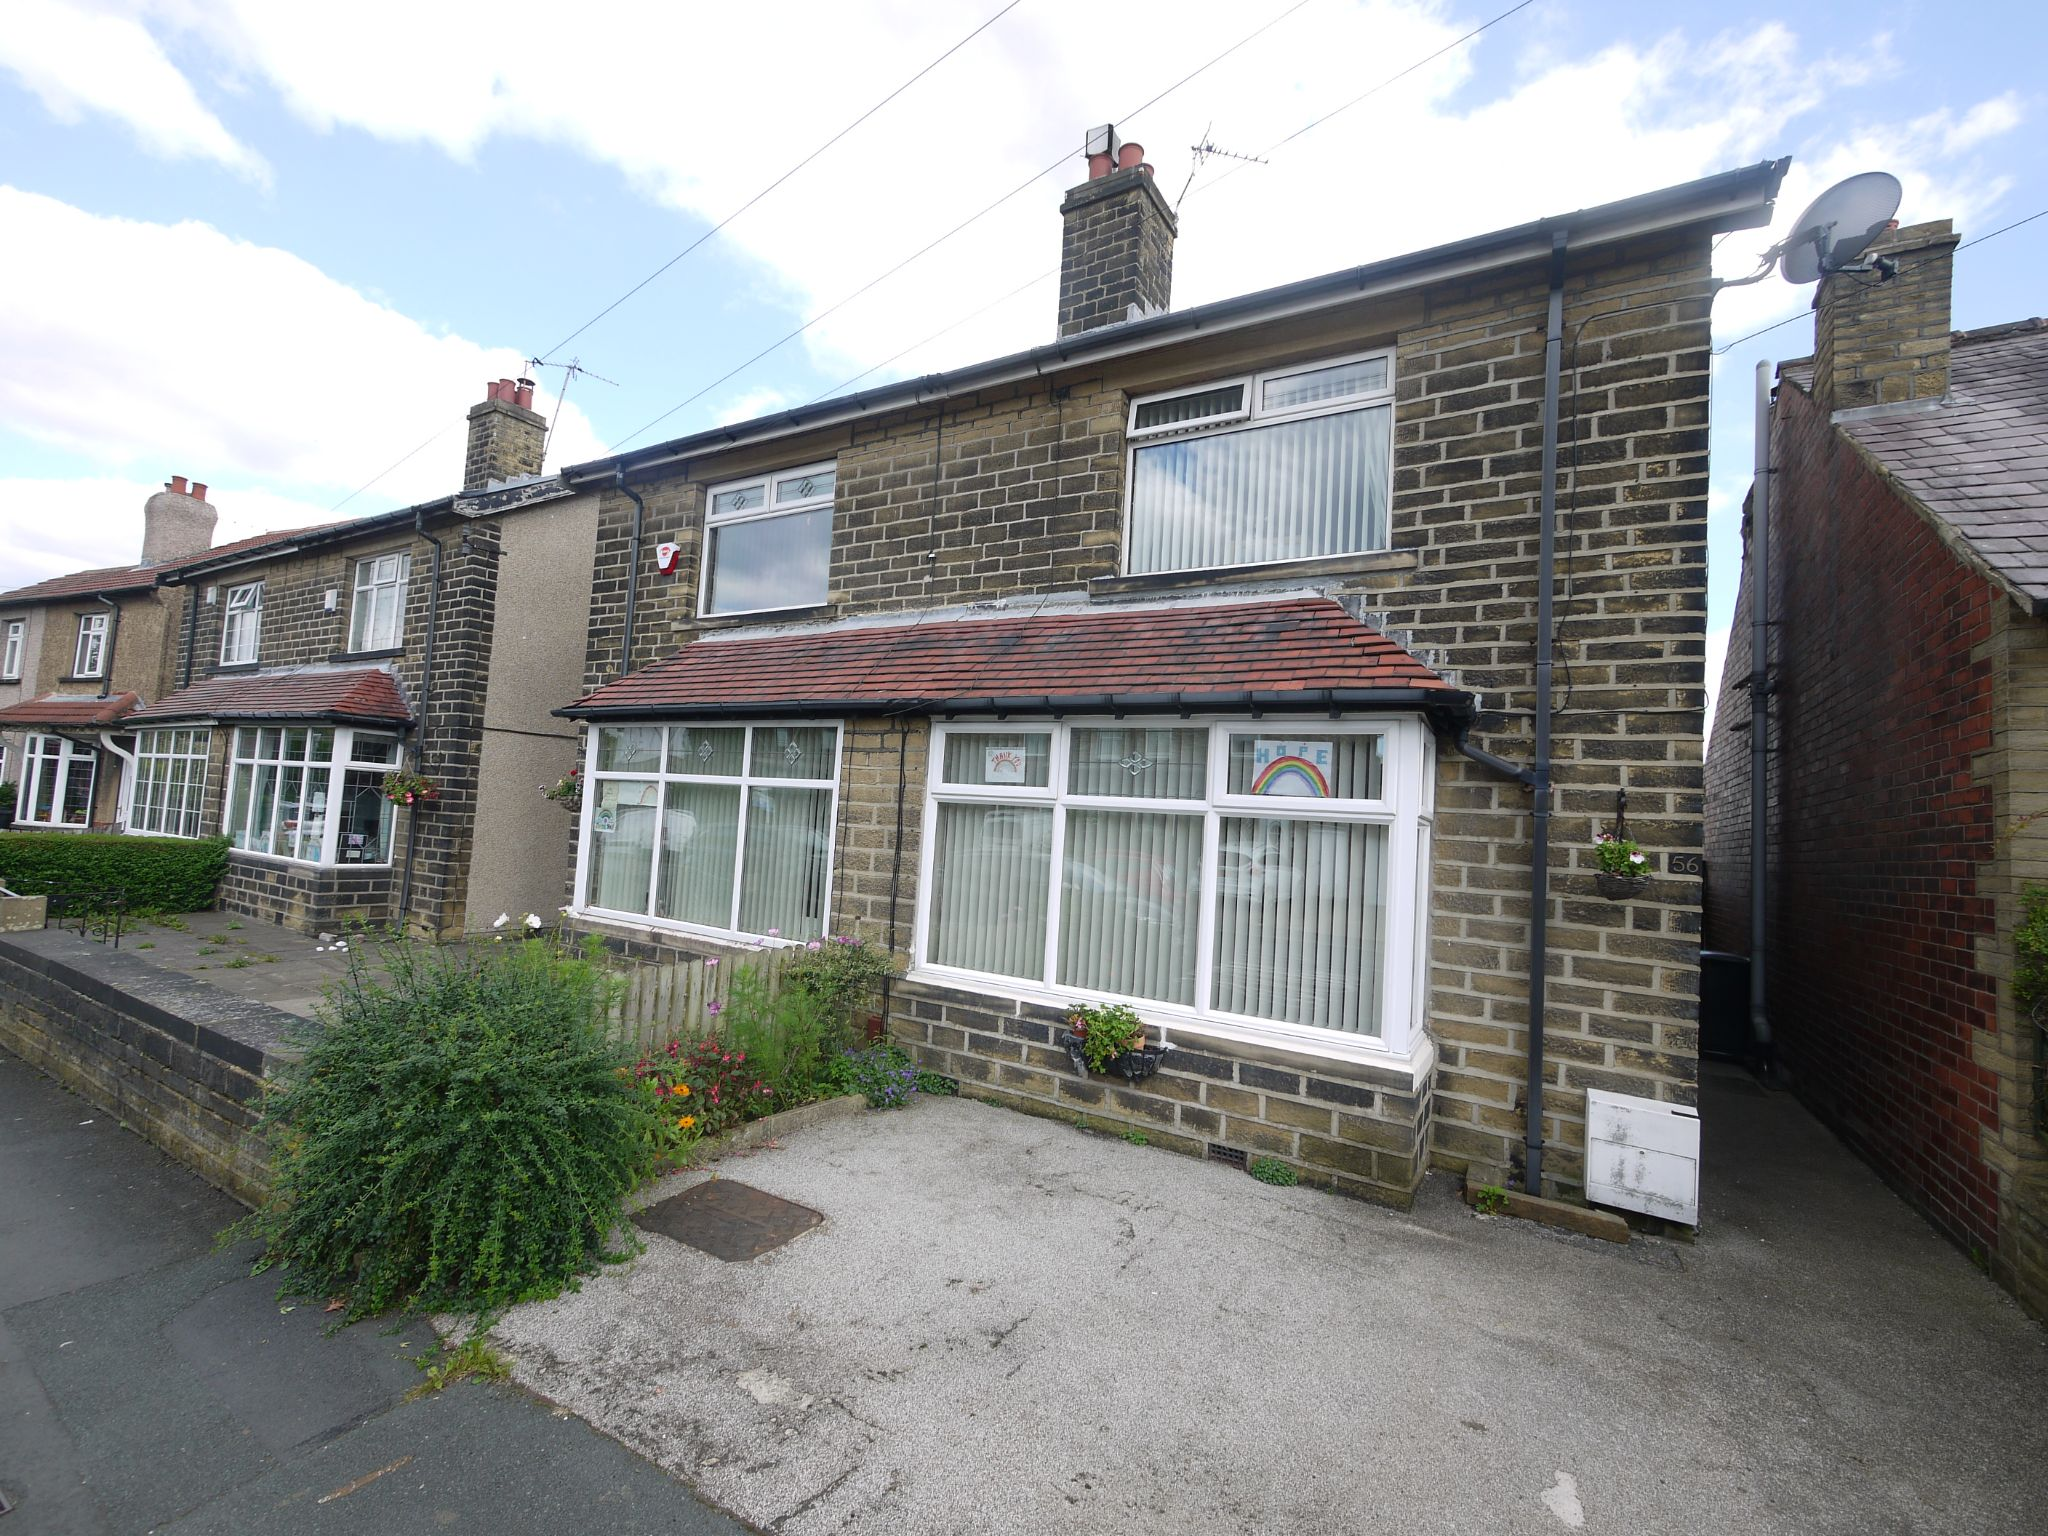 3 bedroom semi-detached house SSTC in Calderdale - Photograph 3.